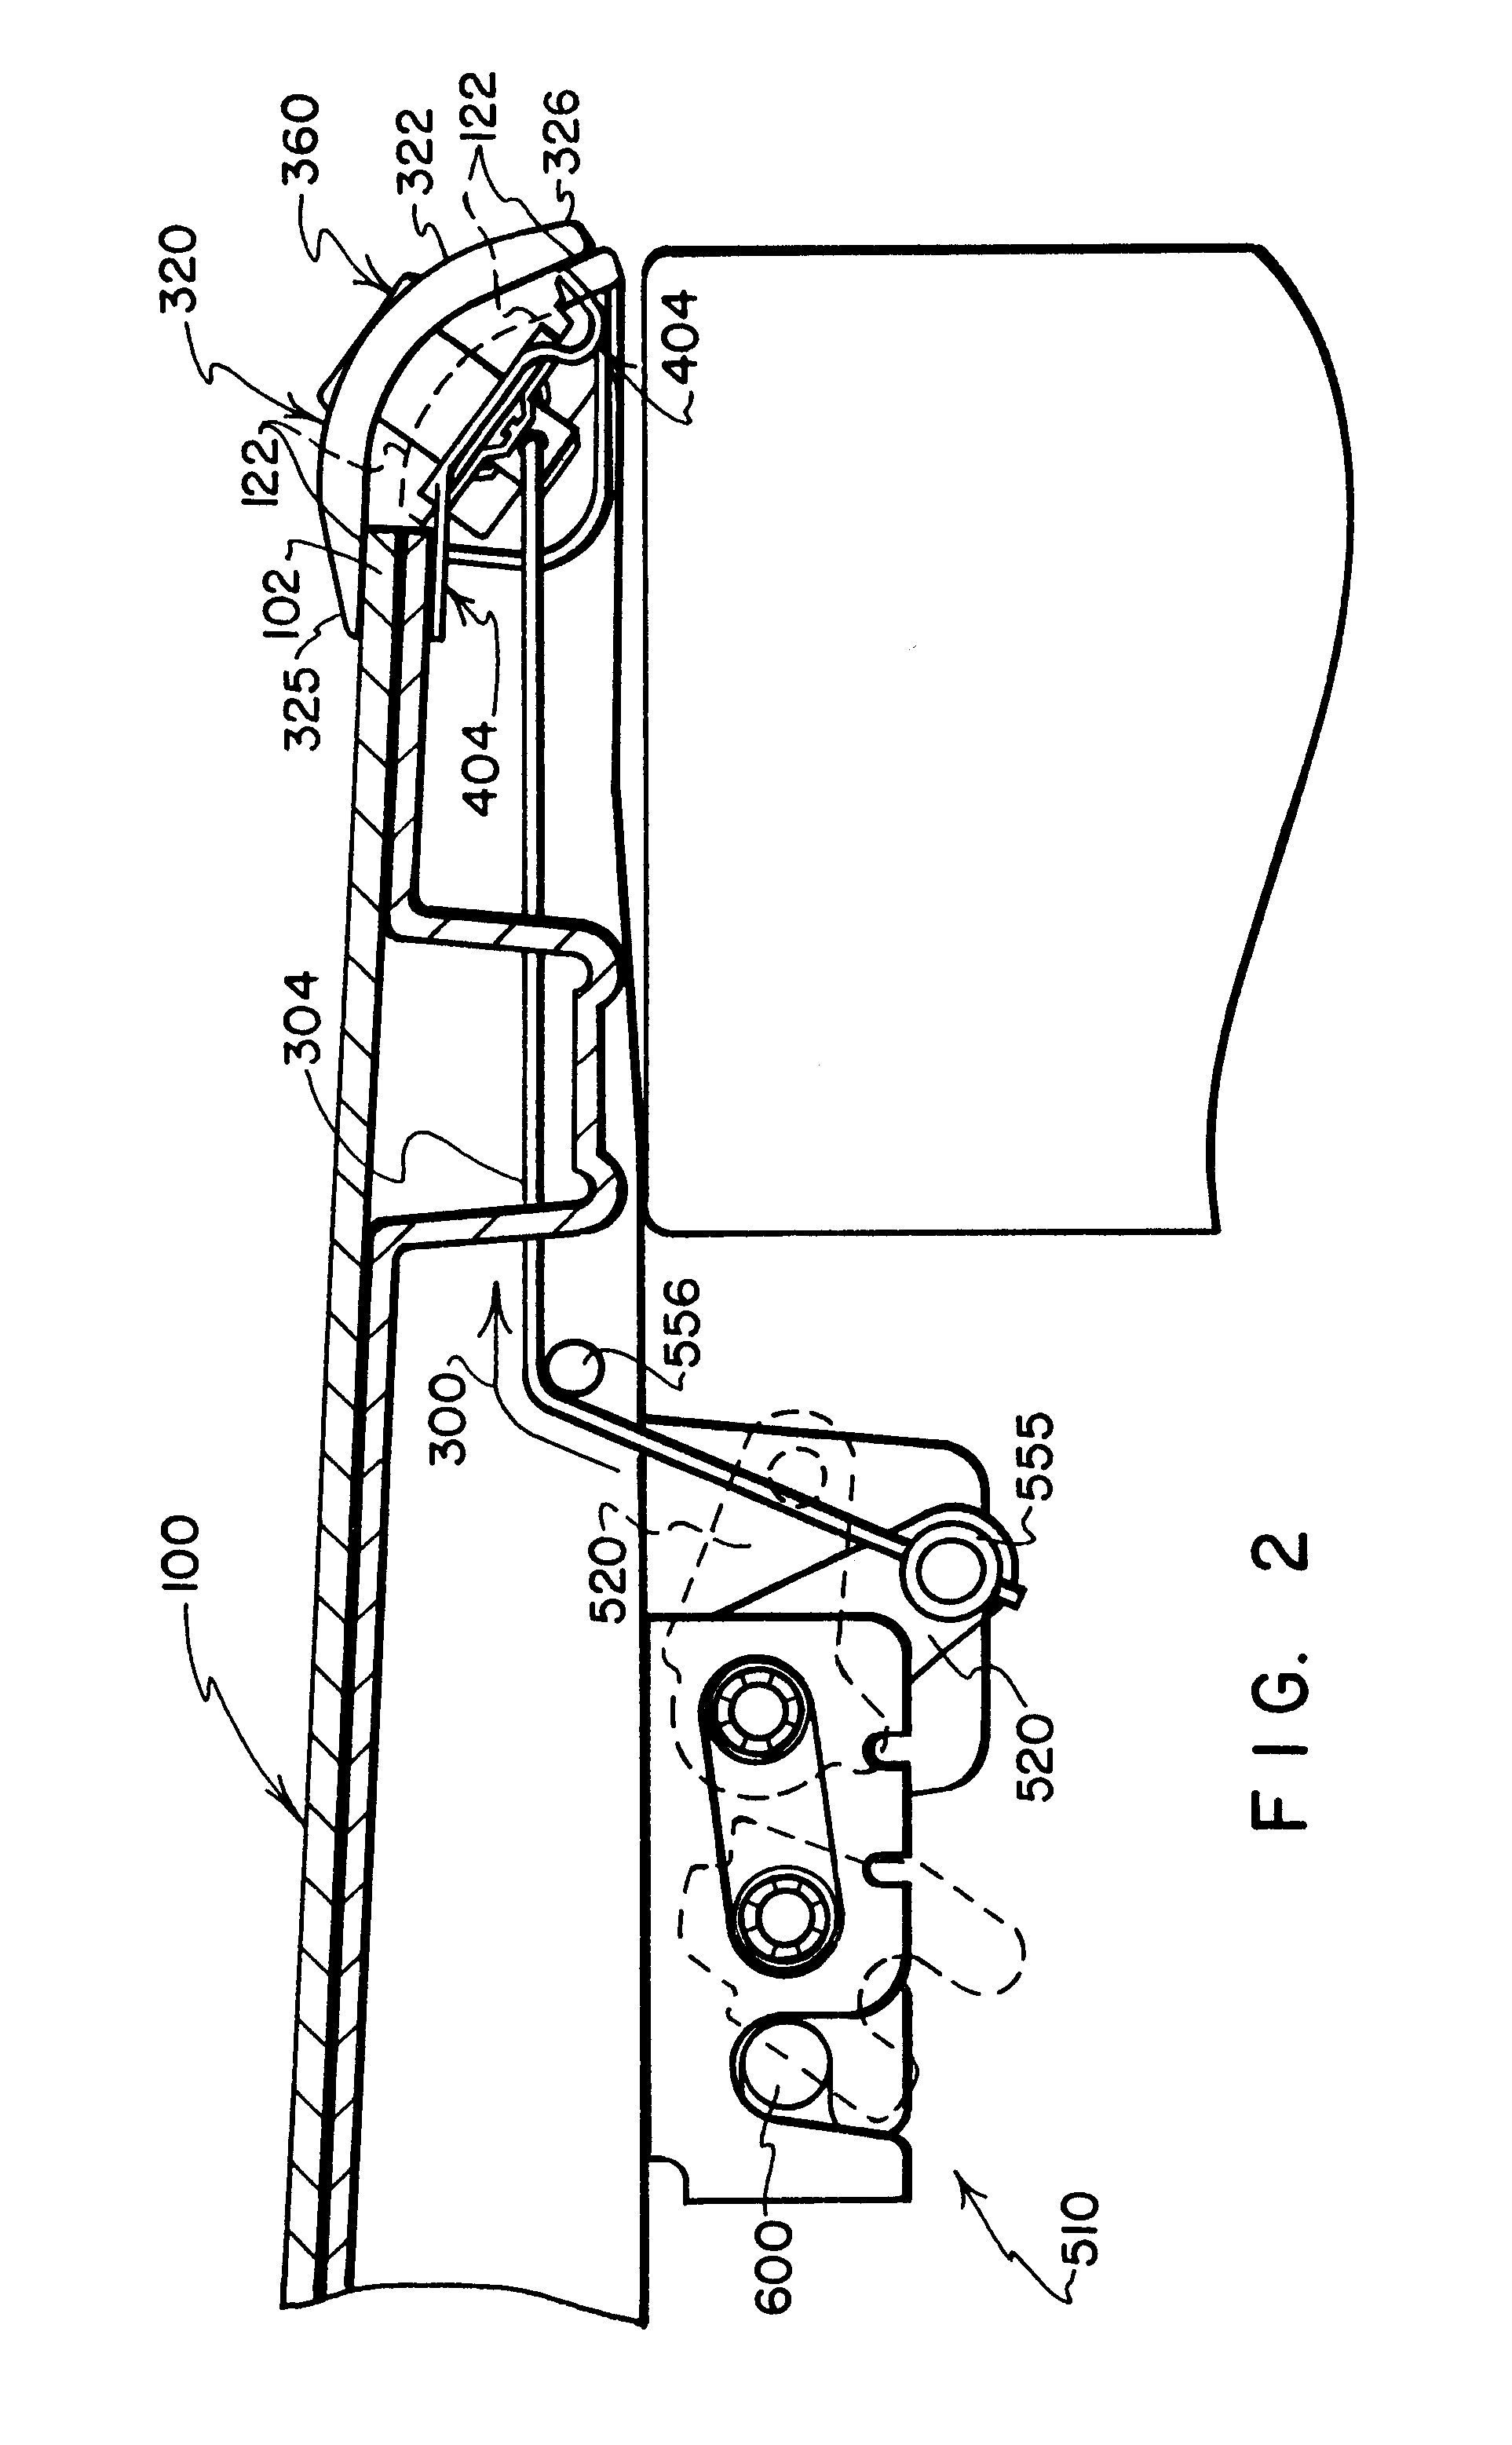 Flexible Cable Latch System : Patent us latch lock and hinge system for use